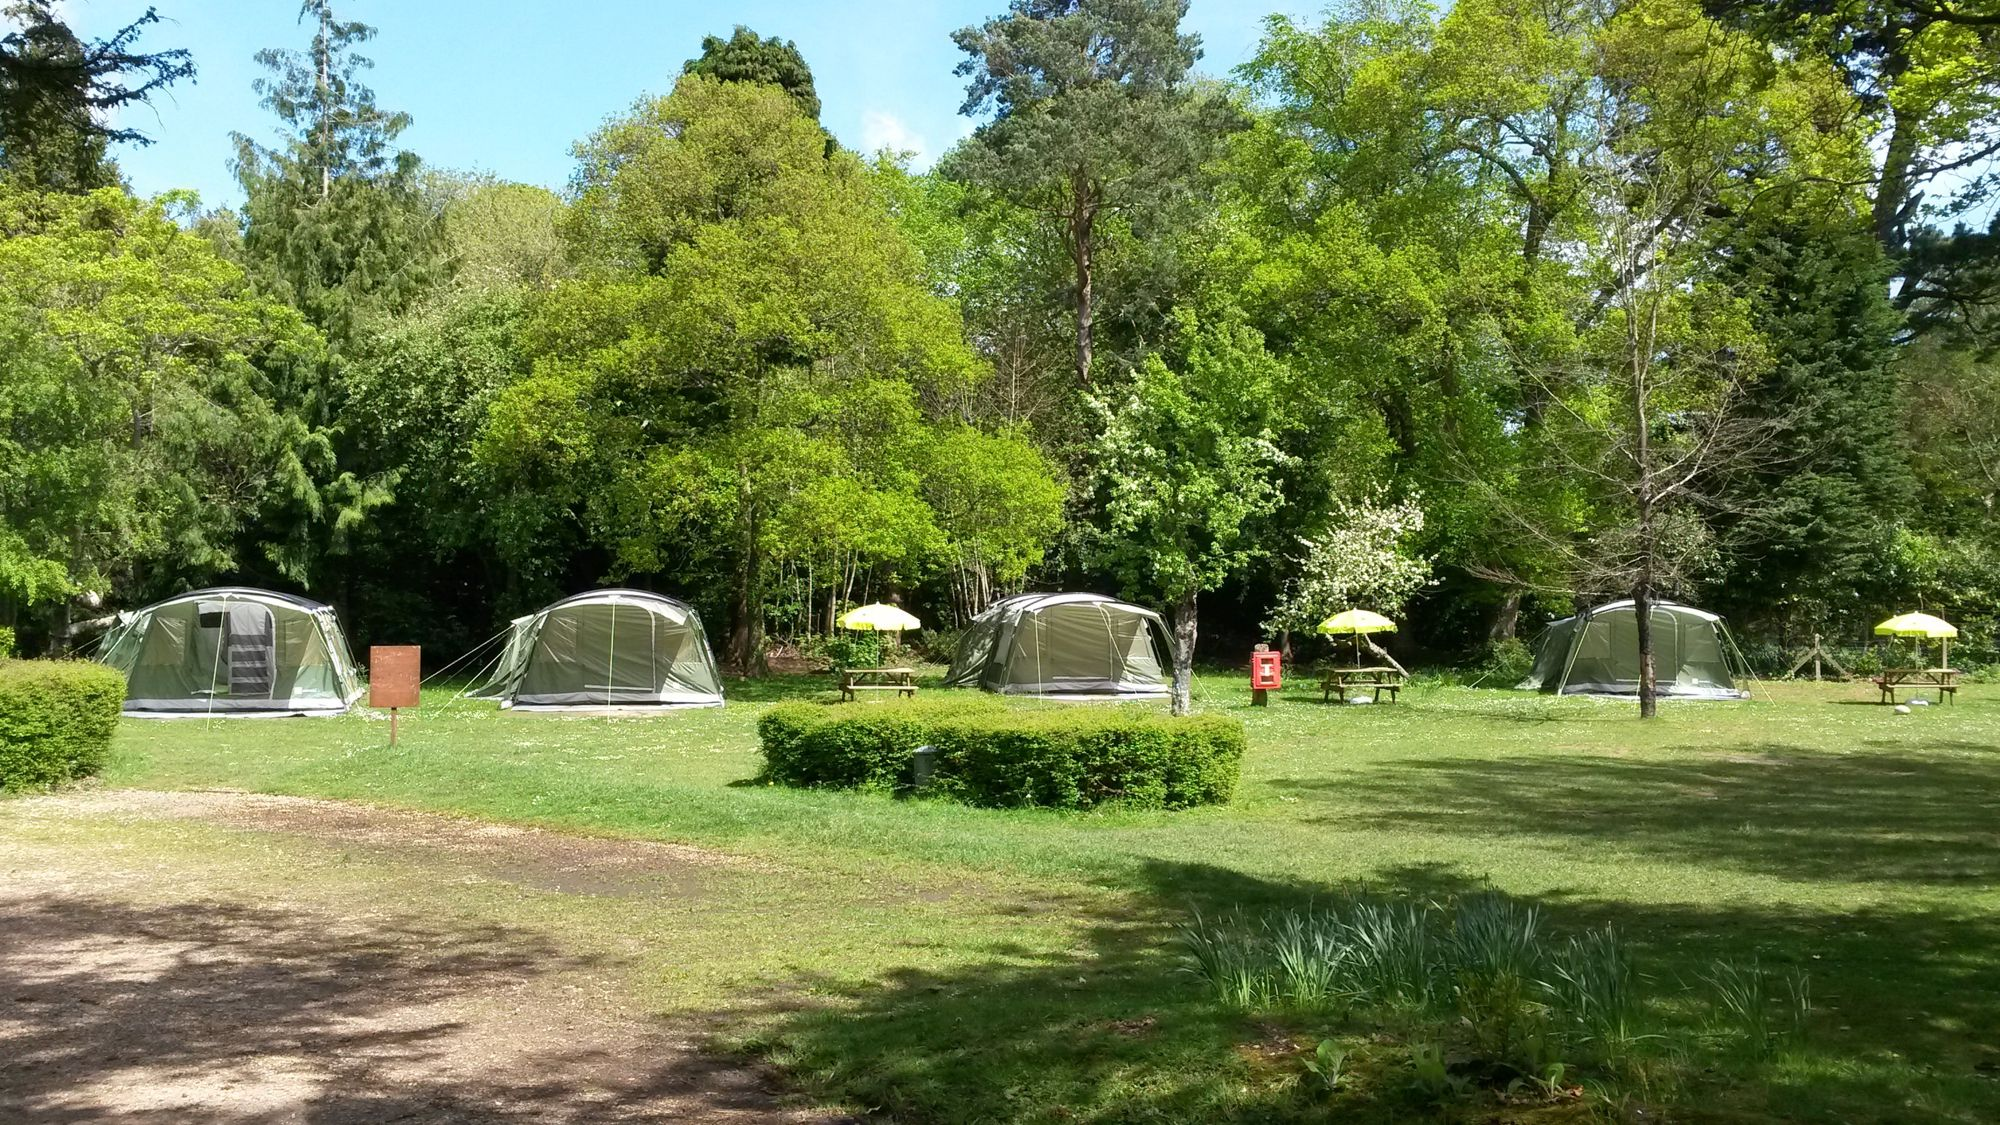 Excellent facilities inside and spacious camping and glamping options outside in the grounds of this well located New Forest youth hostel.